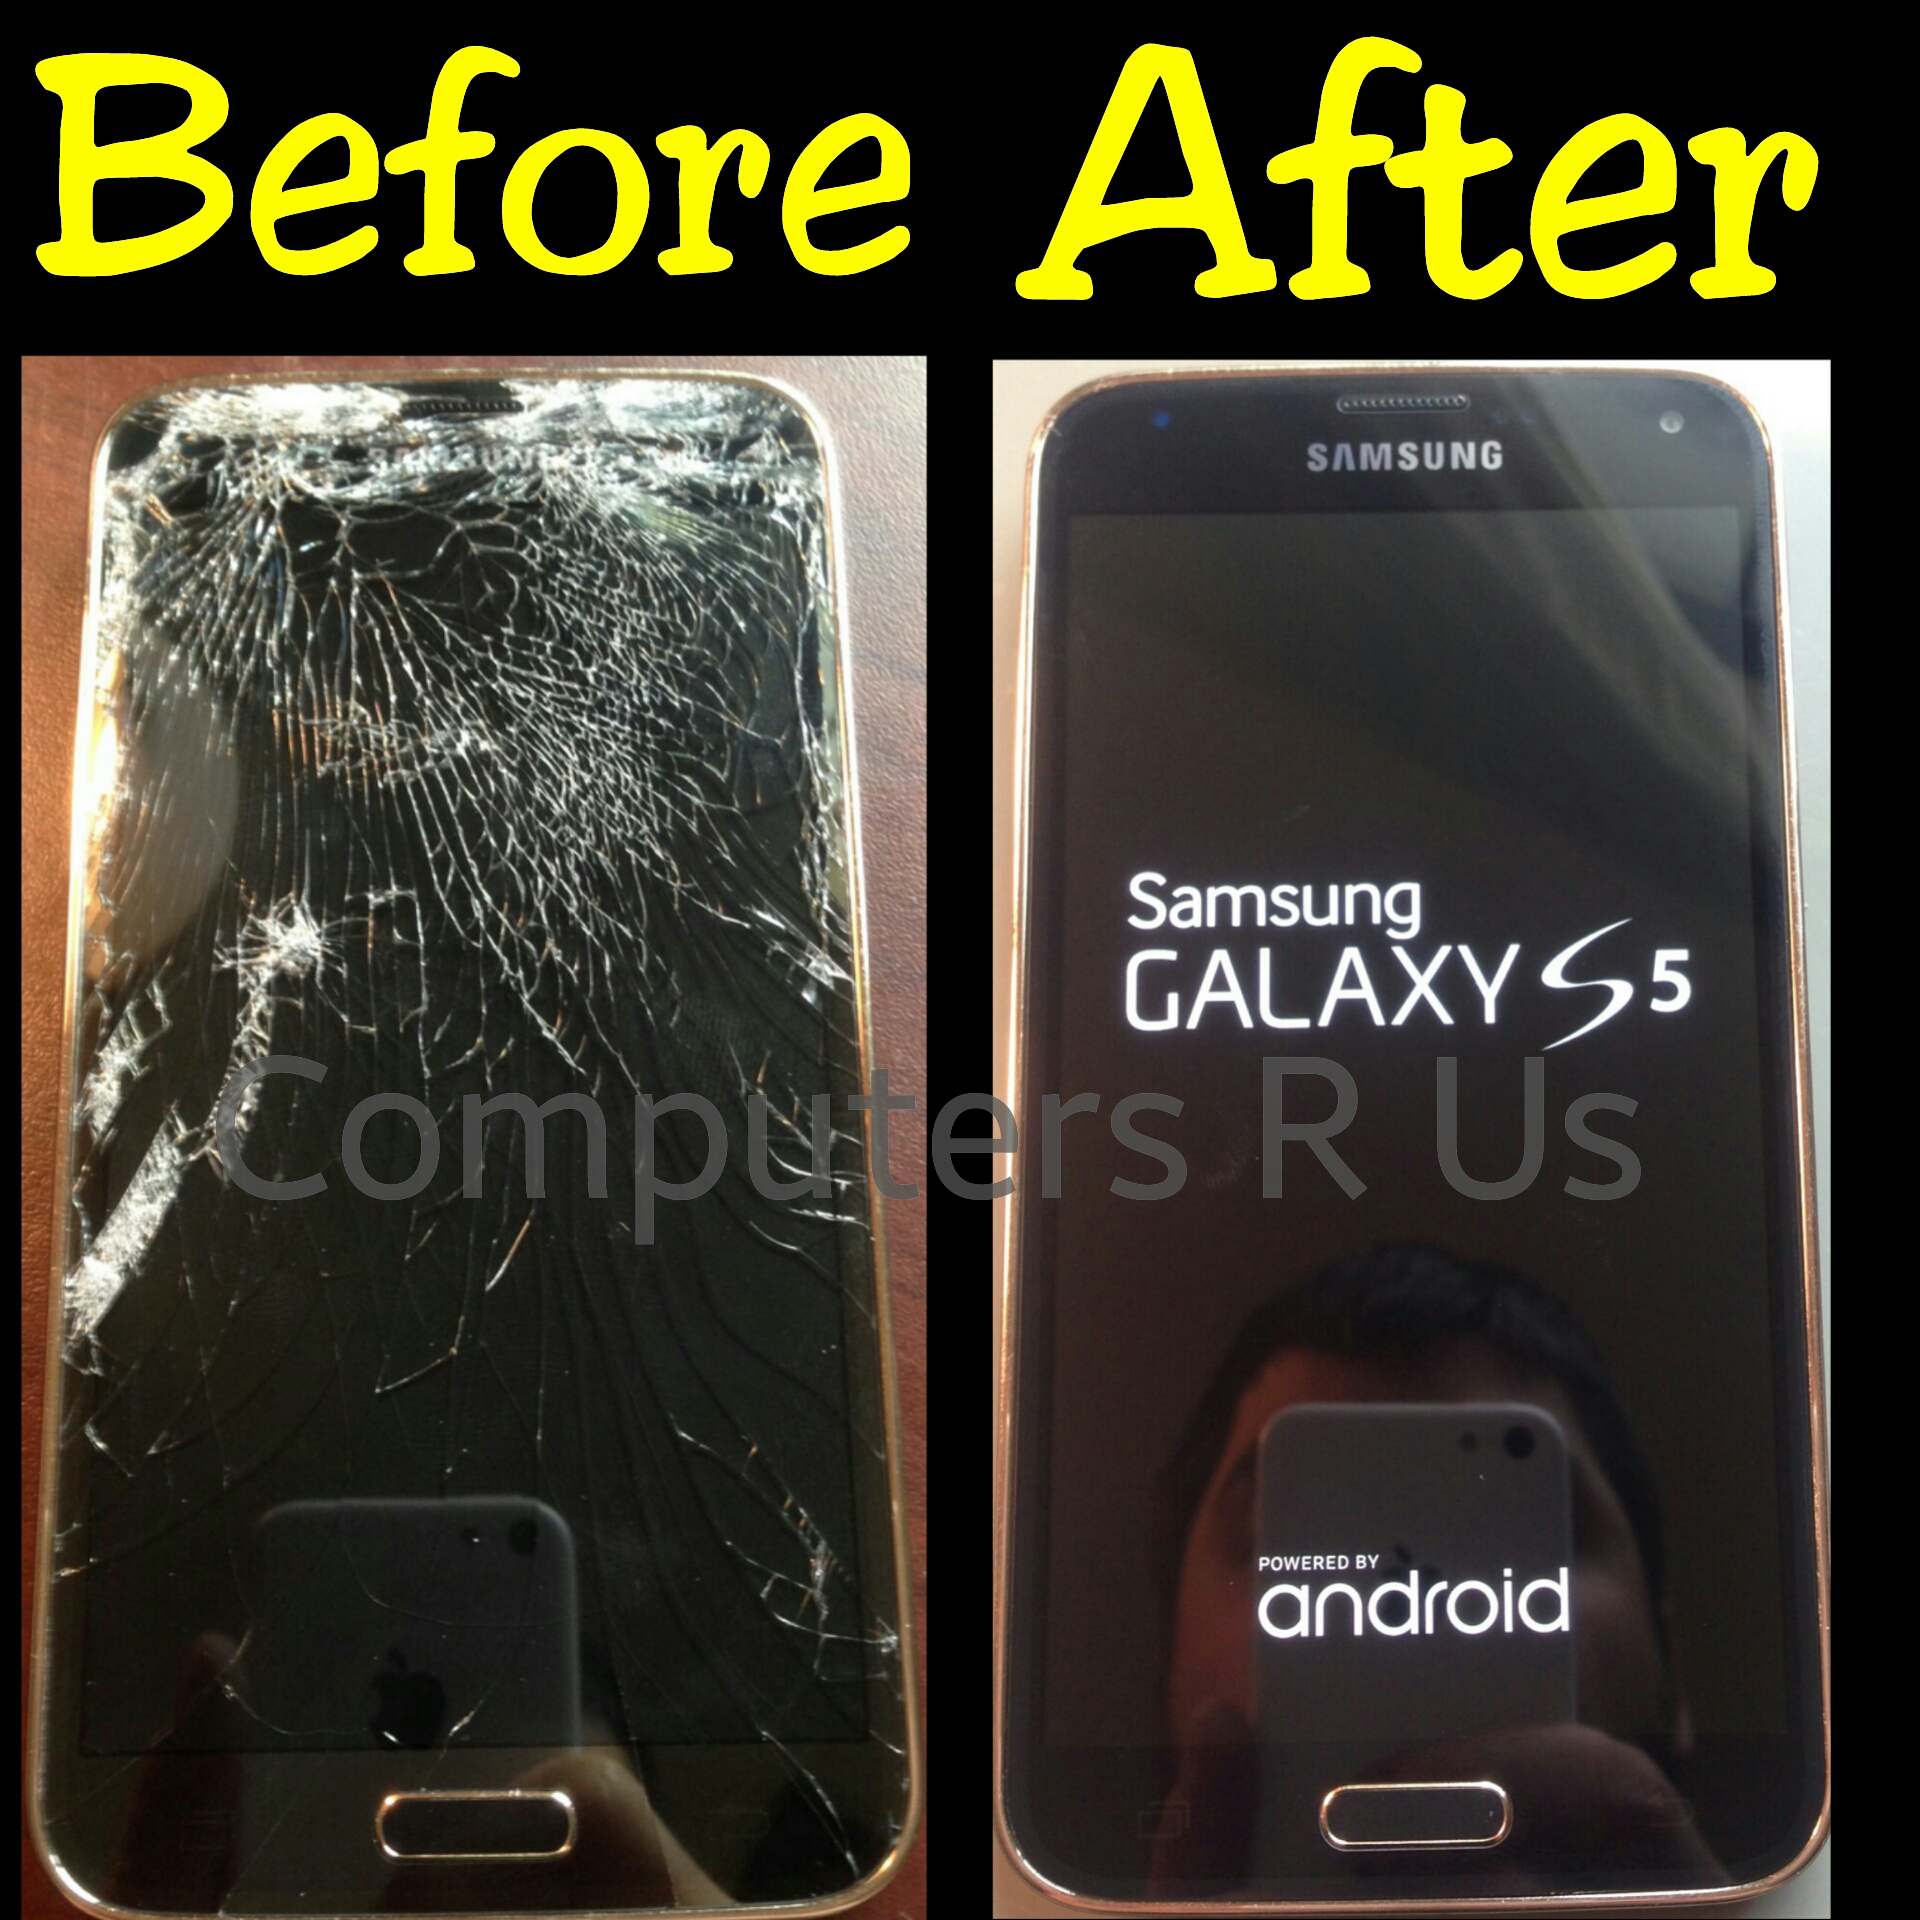 Galaxy S5 Glass Replaced - Before/After